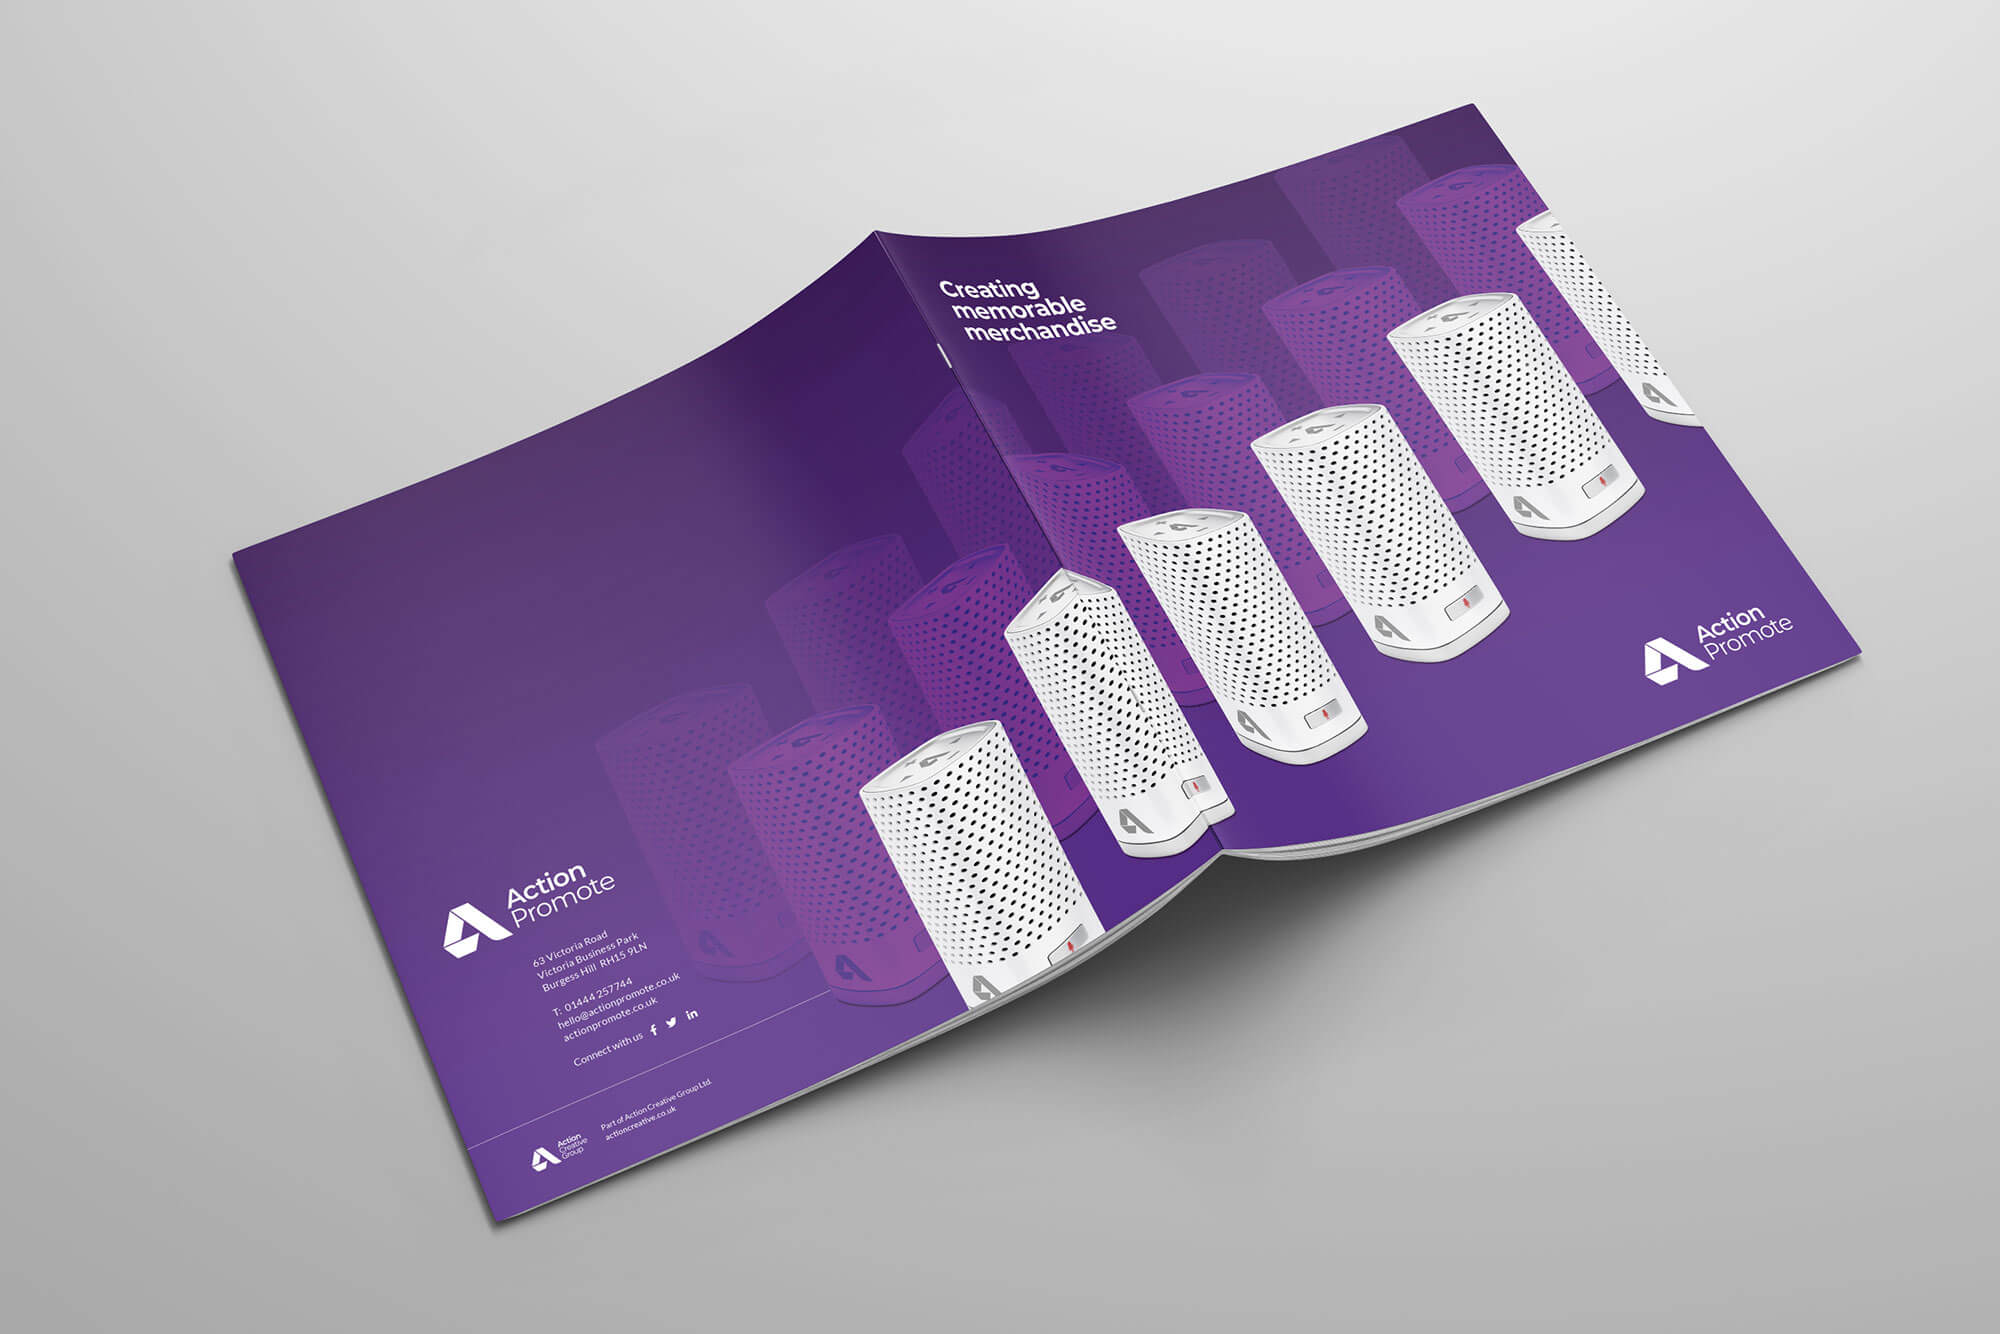 Action Promote Overview Brochure Outer Covers